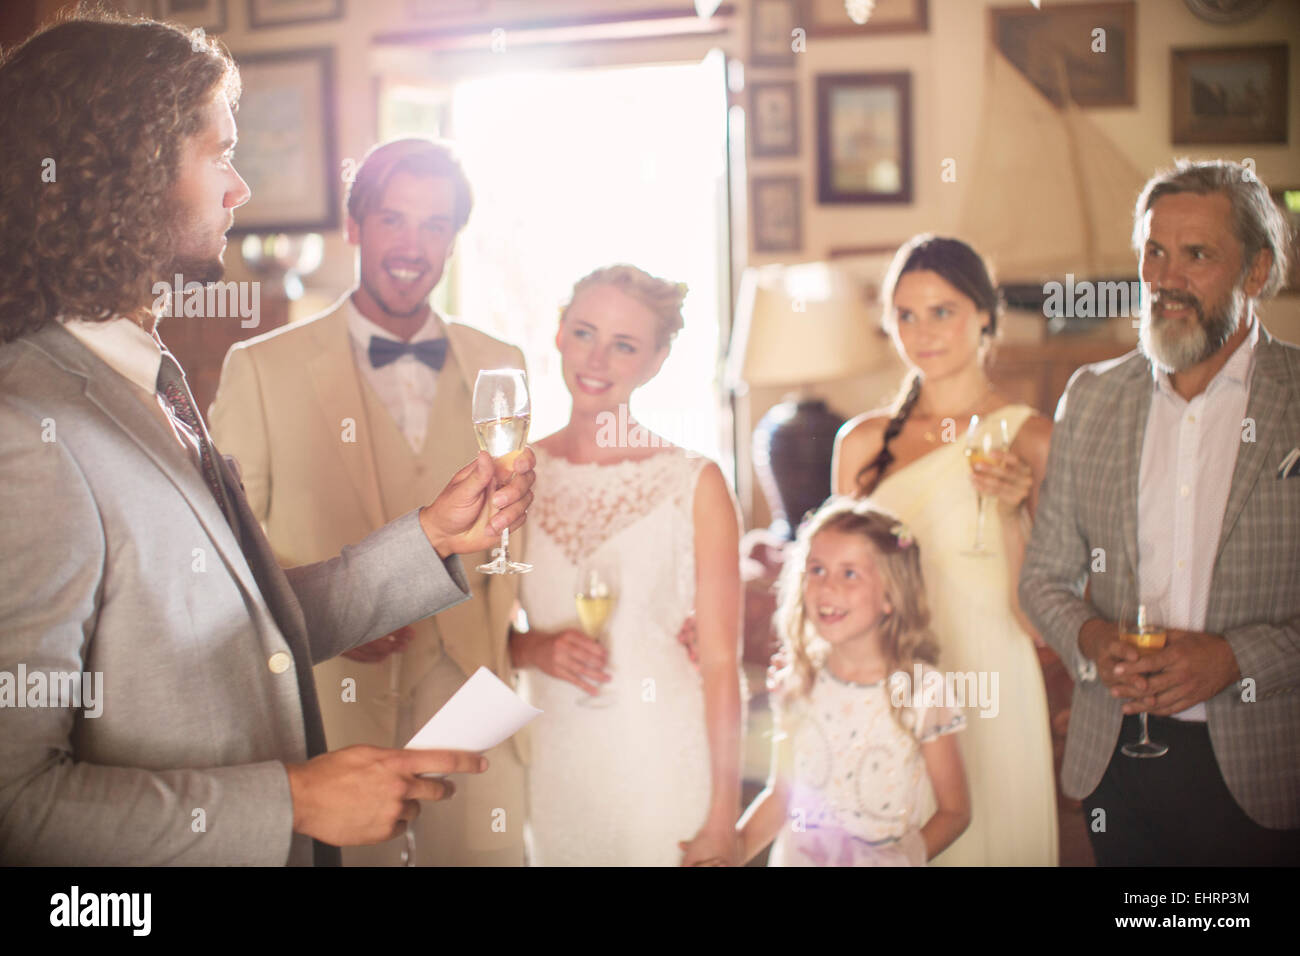 Best man toasting with champagne and giving speech during wedding reception in domestic room - Stock Image